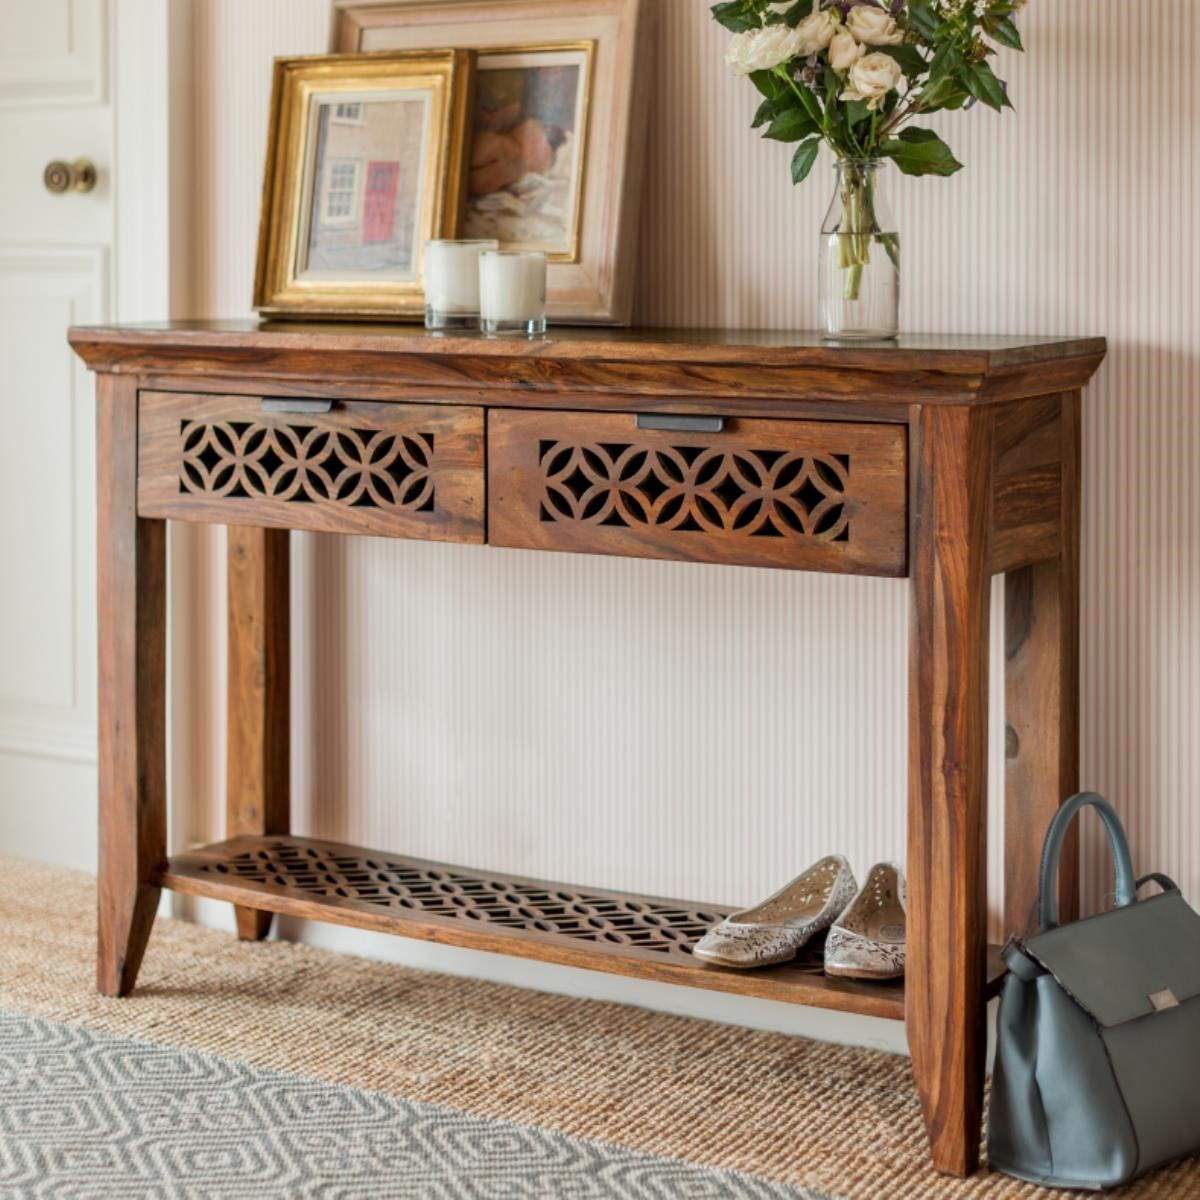 Console Or Hallway Table Made From Hand Waxed Sheesham Wood. With  Decorative Shelf For Display